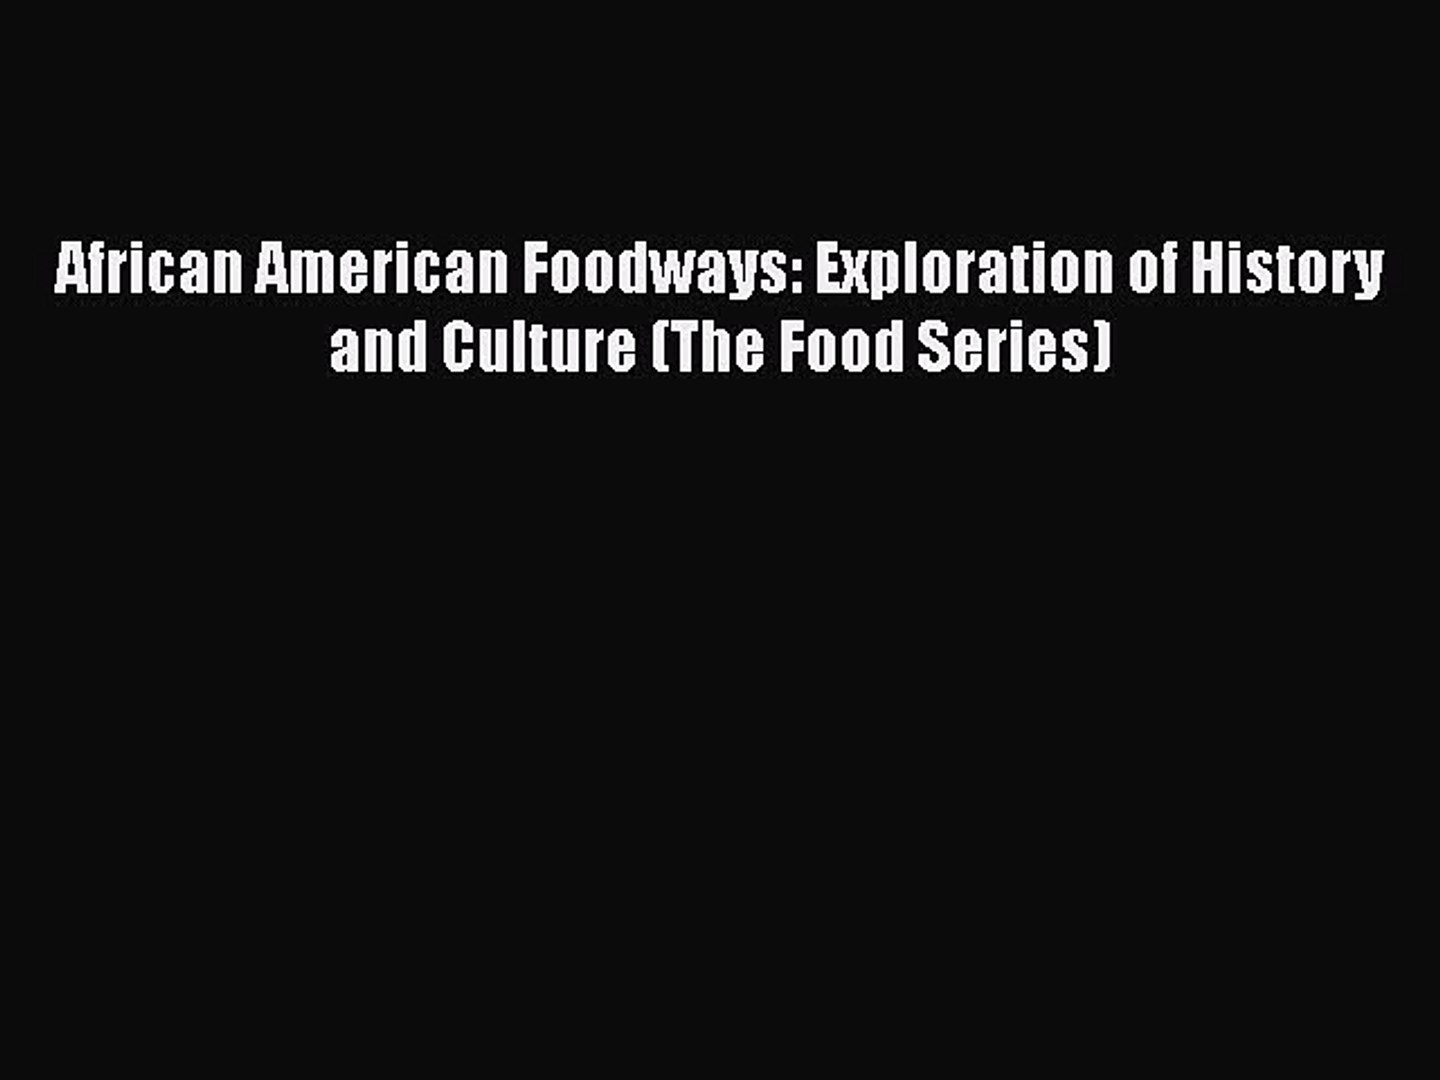 Read Book African American Foodways: Exploration of History and Culture (The Food Series) E-Book